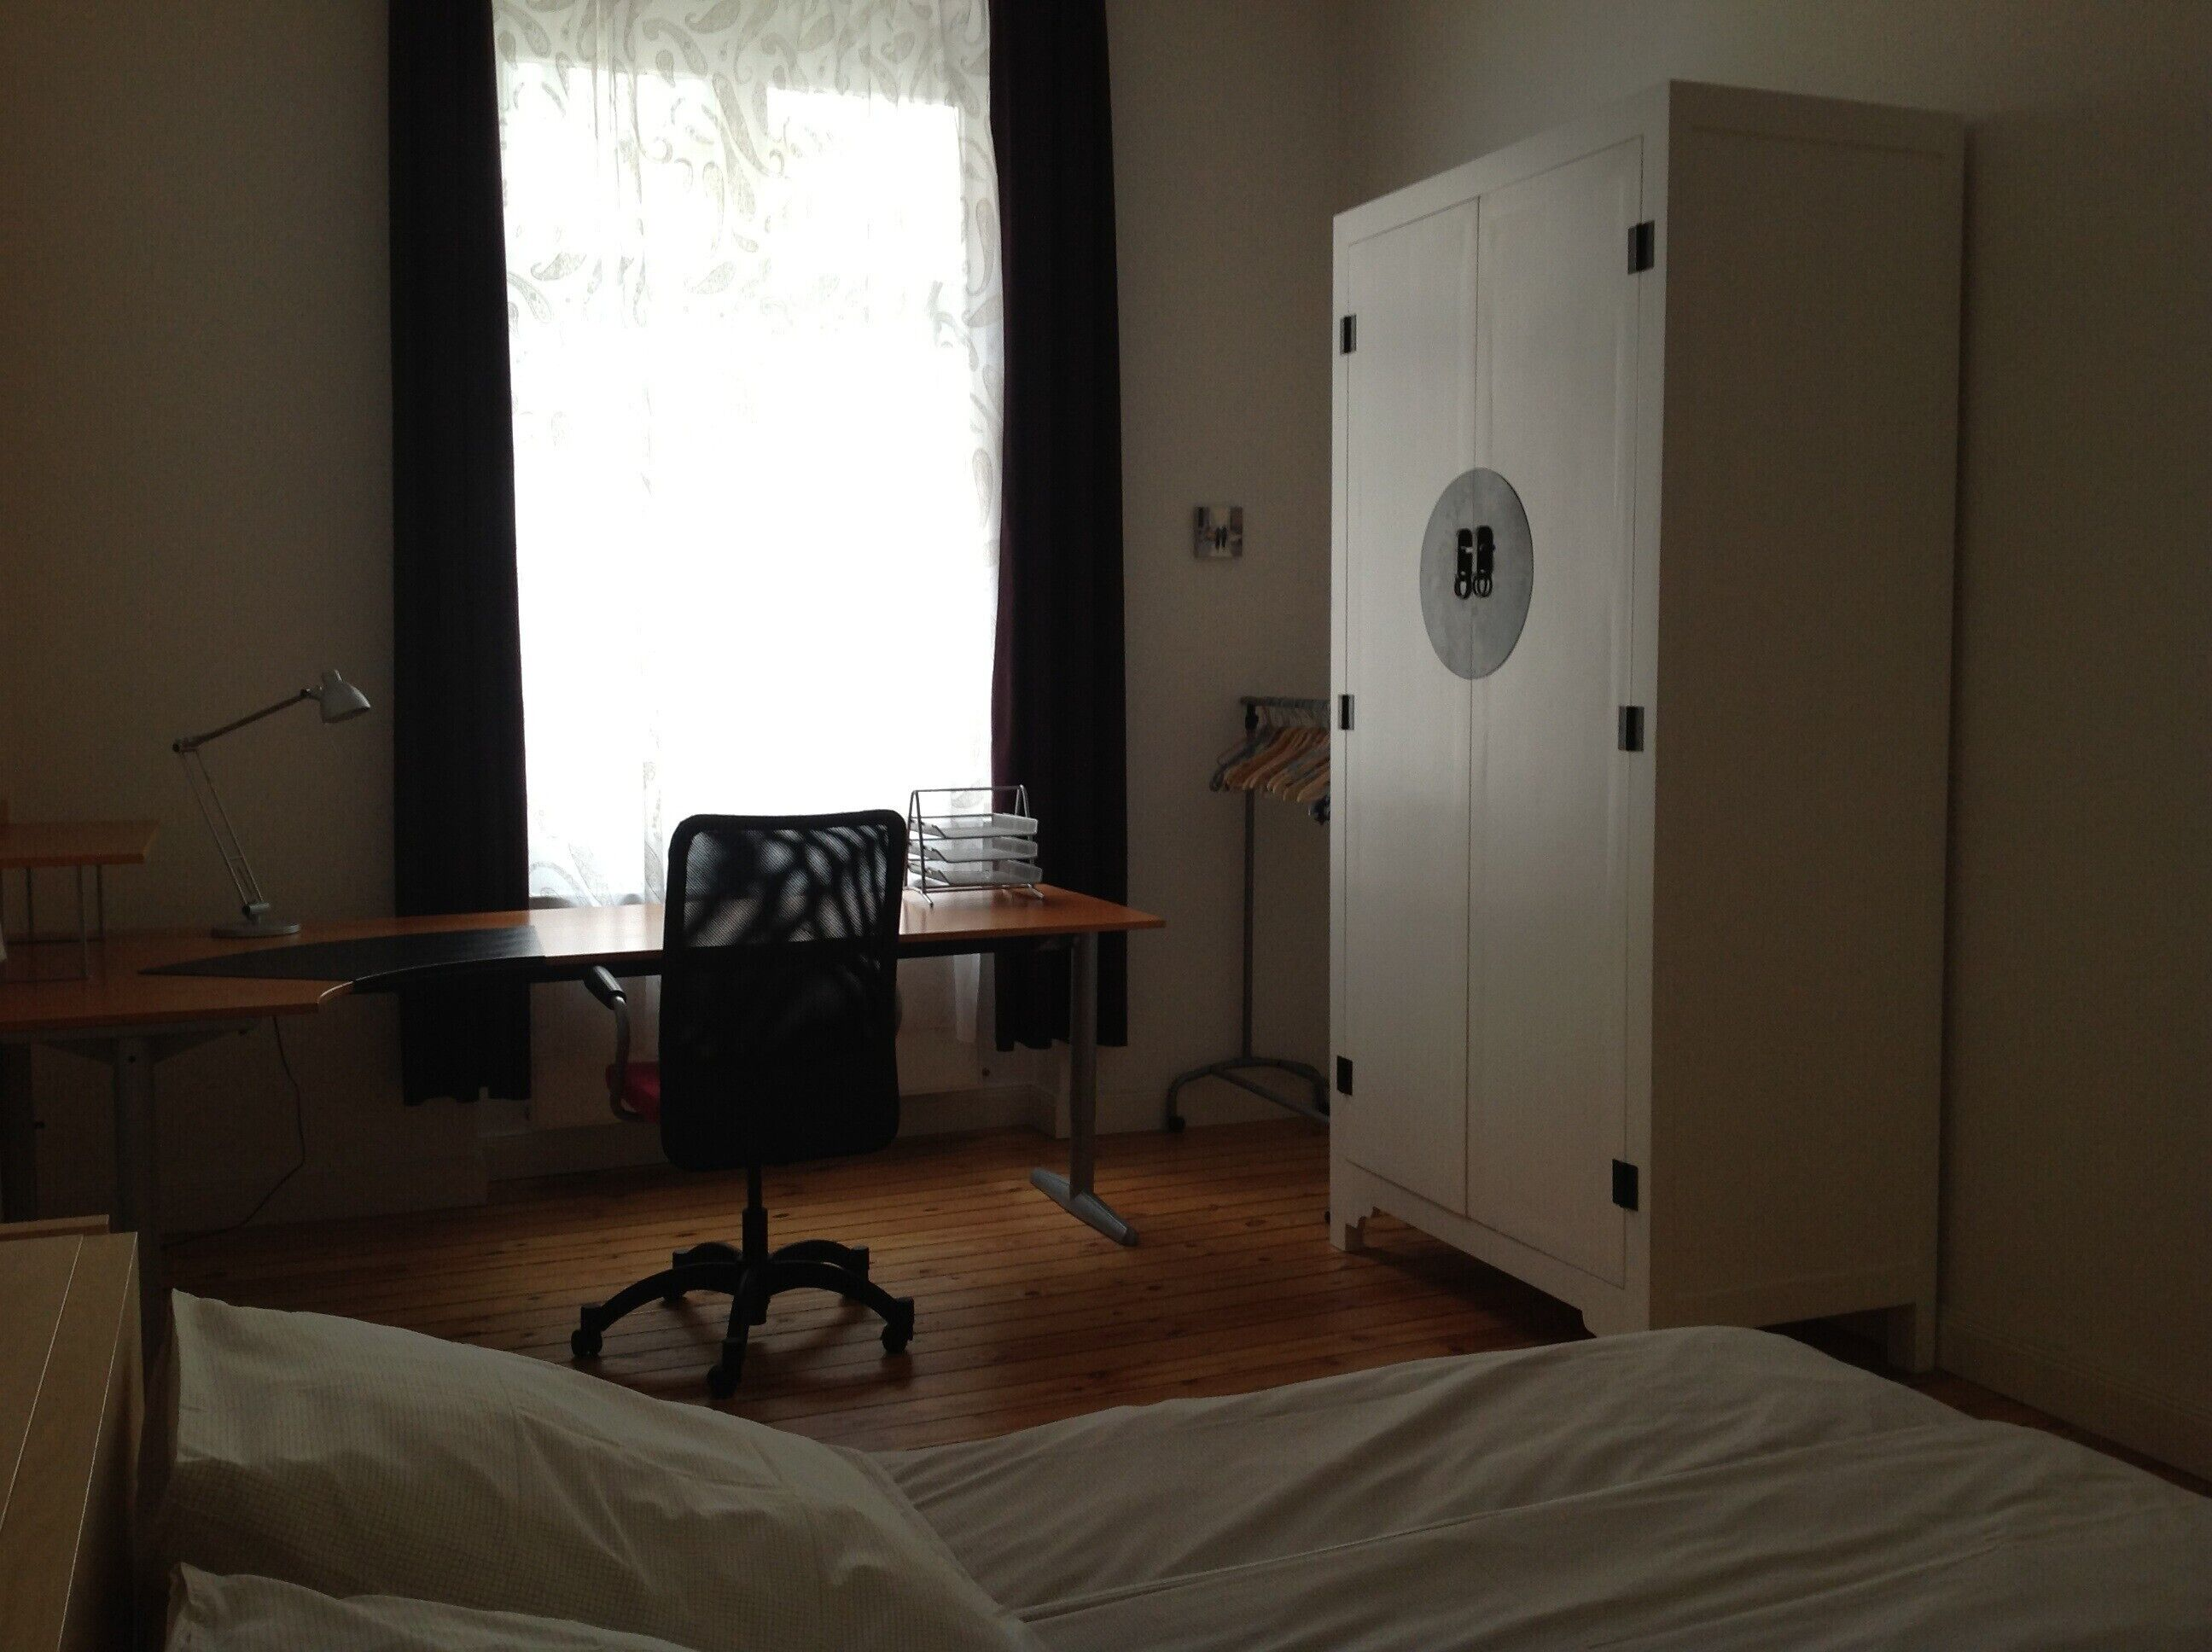 Berlin 3 Rooms 2 Bedrooms In Charlottenburg Berlin Hotelbewertungen 2021 Expedia De